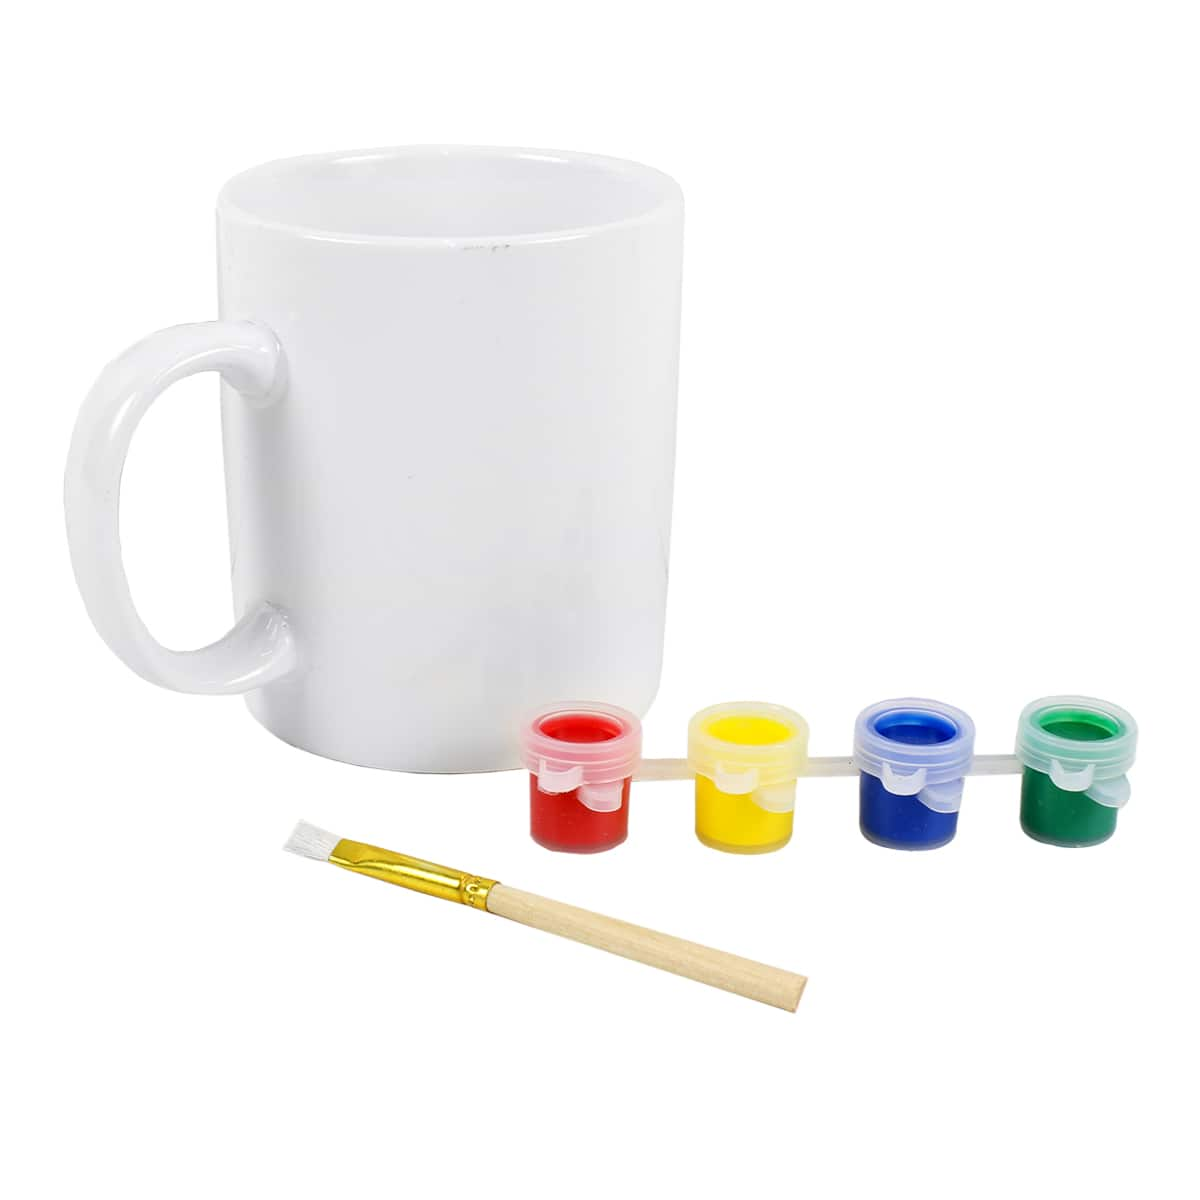 Paint Your Own Mug Kit Cheaper Than Retail Price Buy Clothing Accessories And Lifestyle Products For Women Men